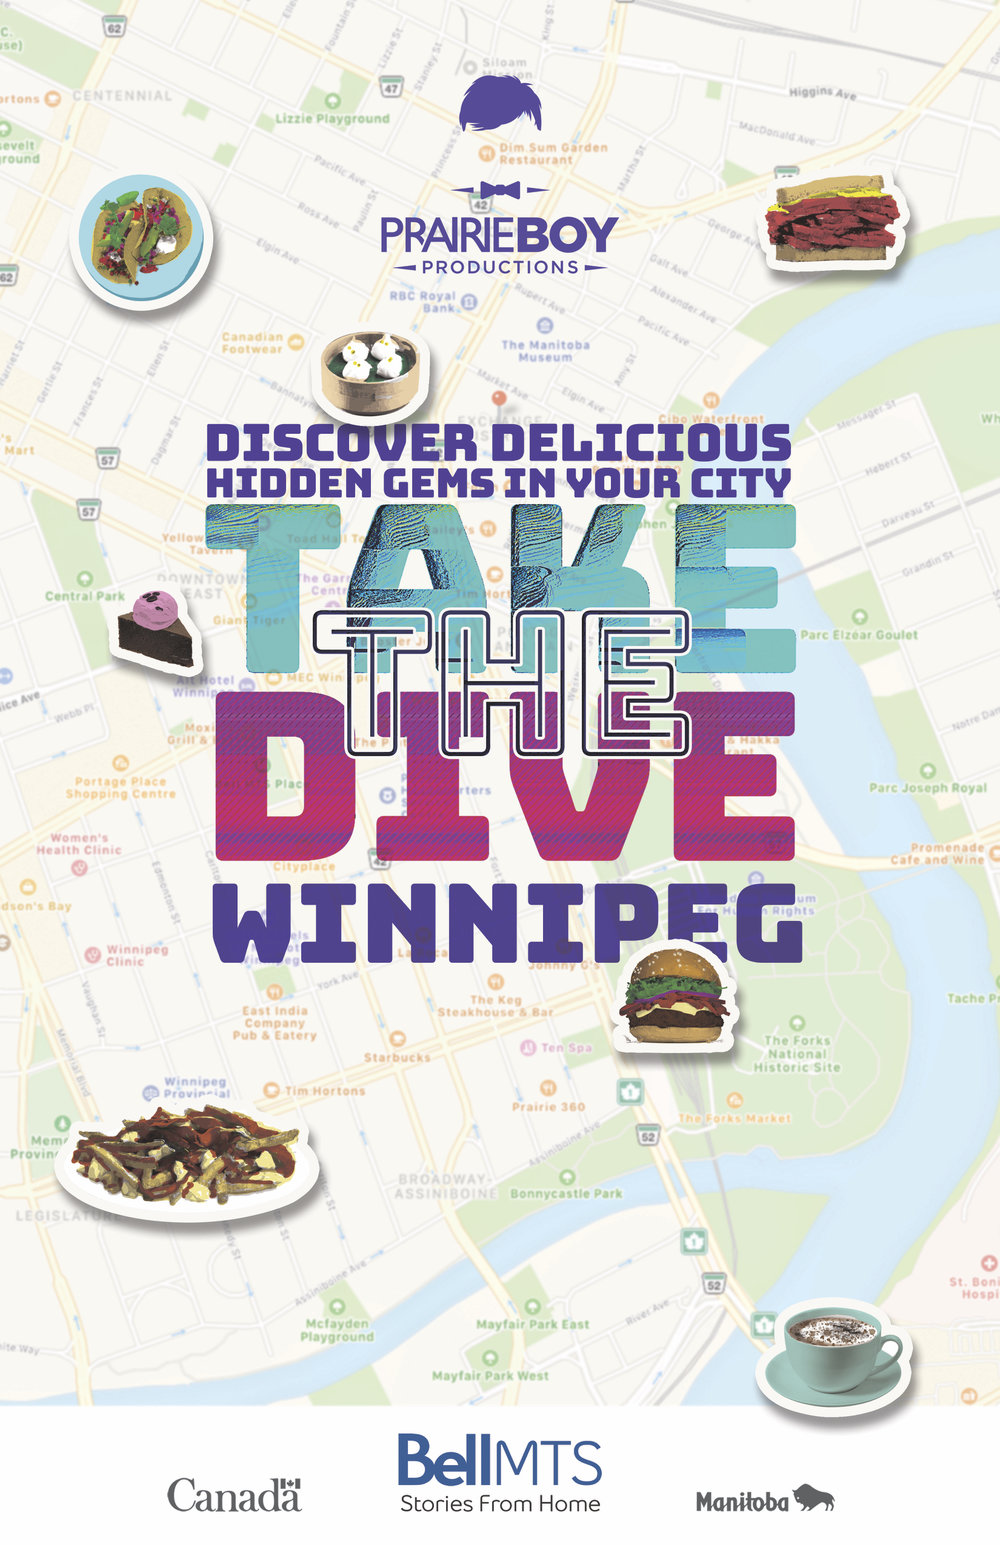 Take the Dive (2018) Lifestyle Food Series for Bell MTS and Travel Manitoba